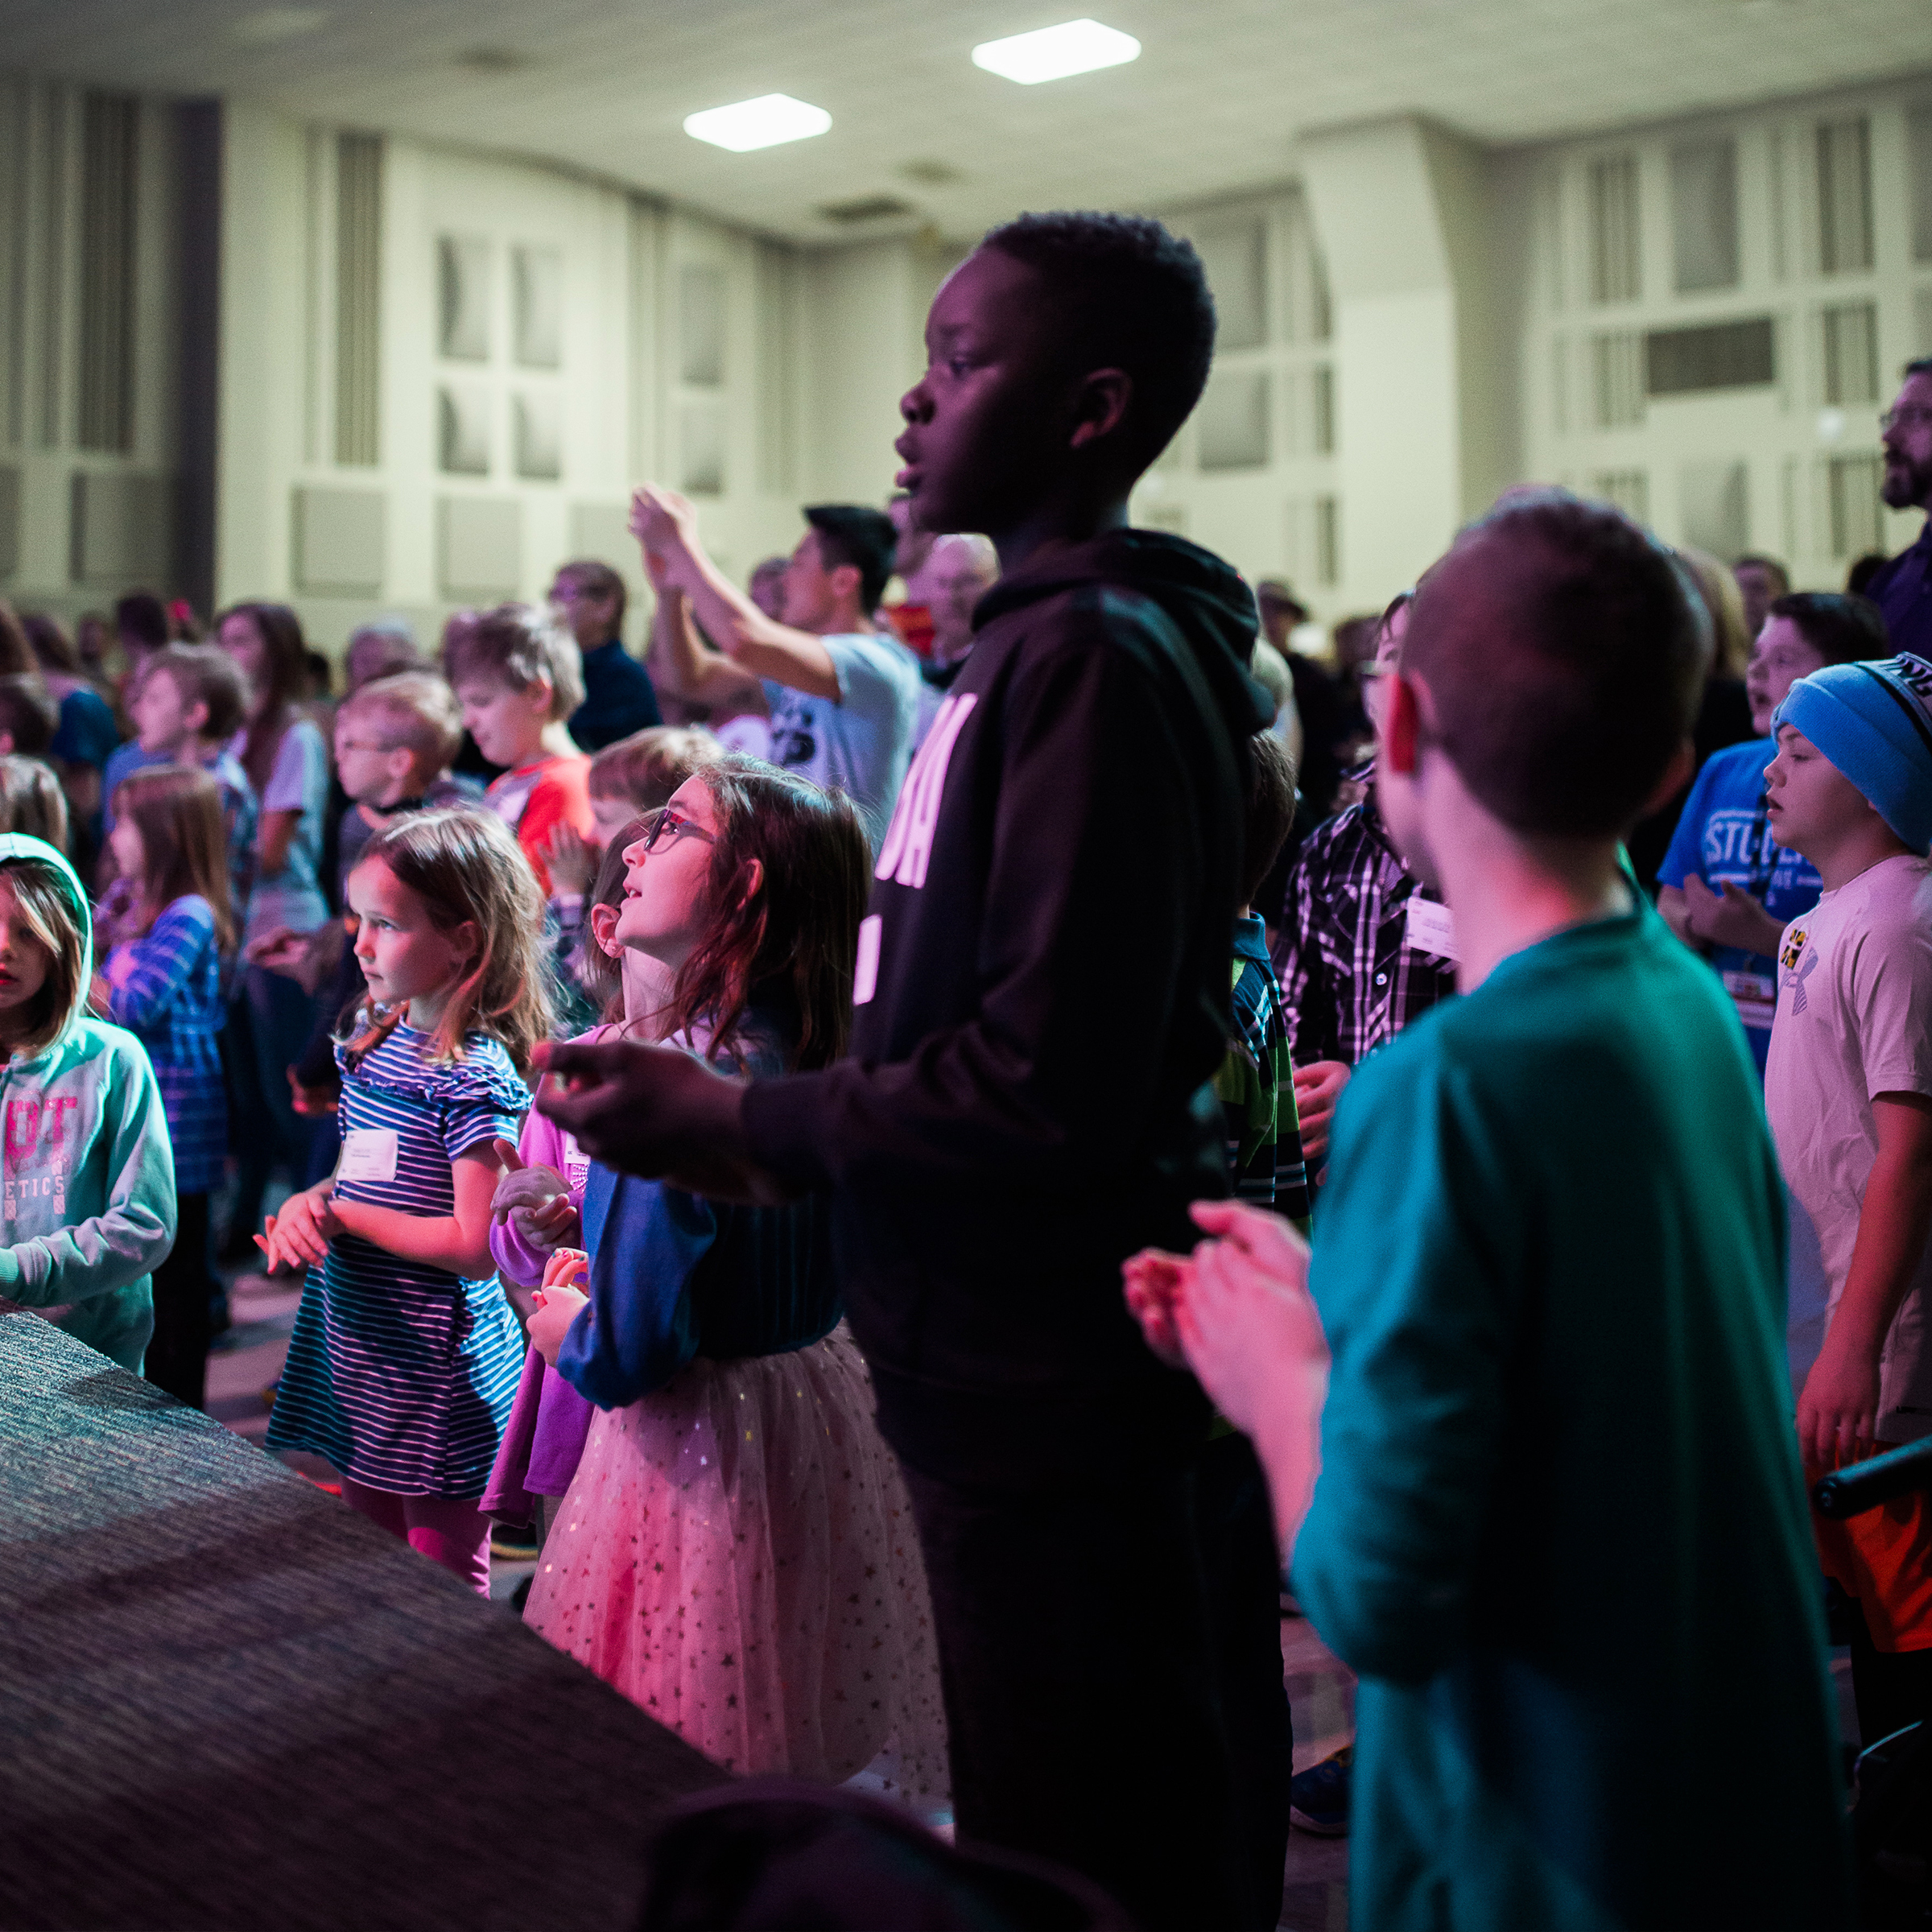 ANTIOCH KIDS - Antioch Kids' purpose is to consistently provide relevant Bible-based instruction in a fun, safe, loving environment where children feel welcome and, in God's timing, will lead to a relationship with God through Jesus Christ.